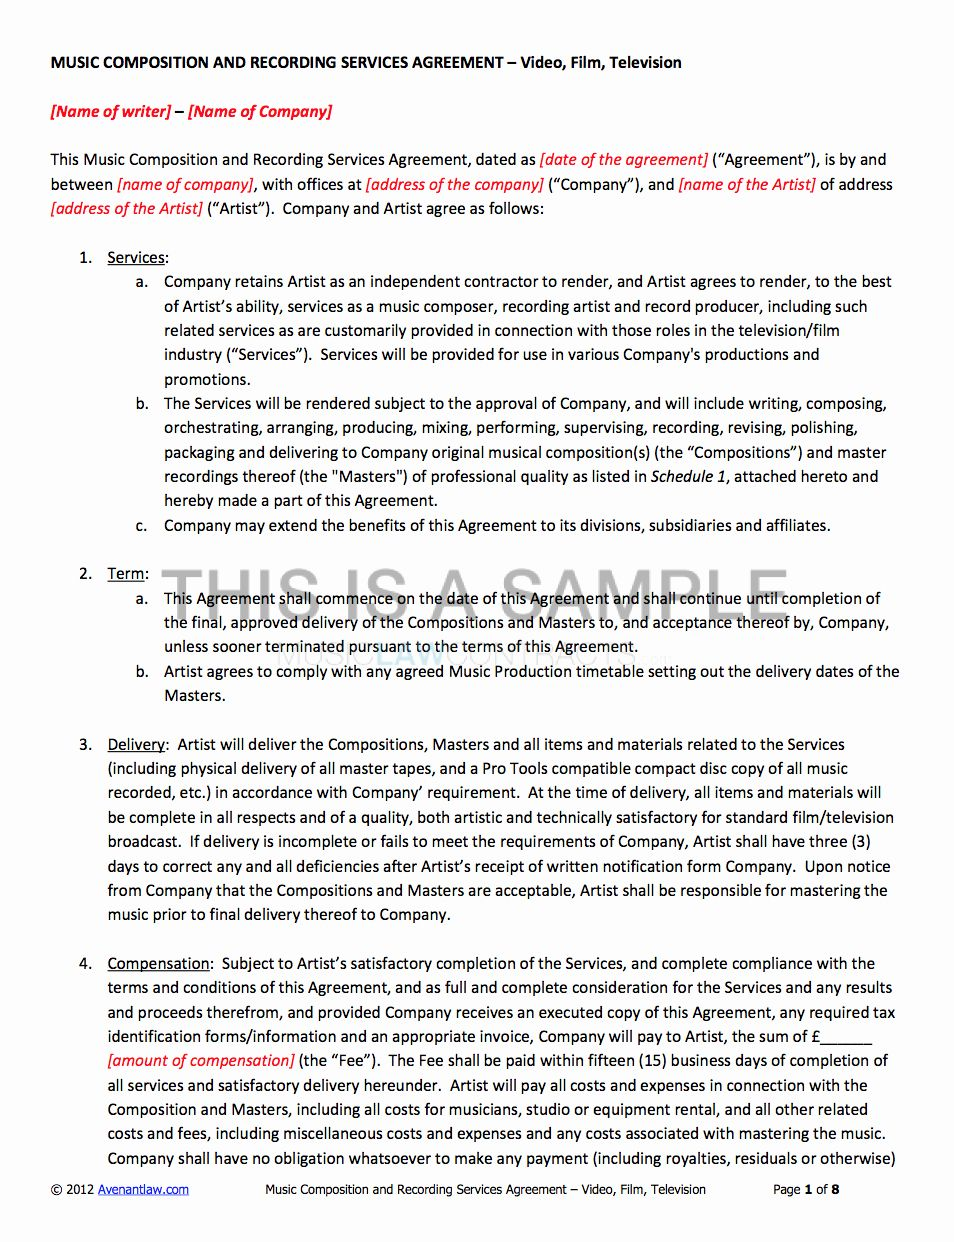 Music Producer Agreement Template In 2020 Contract Template